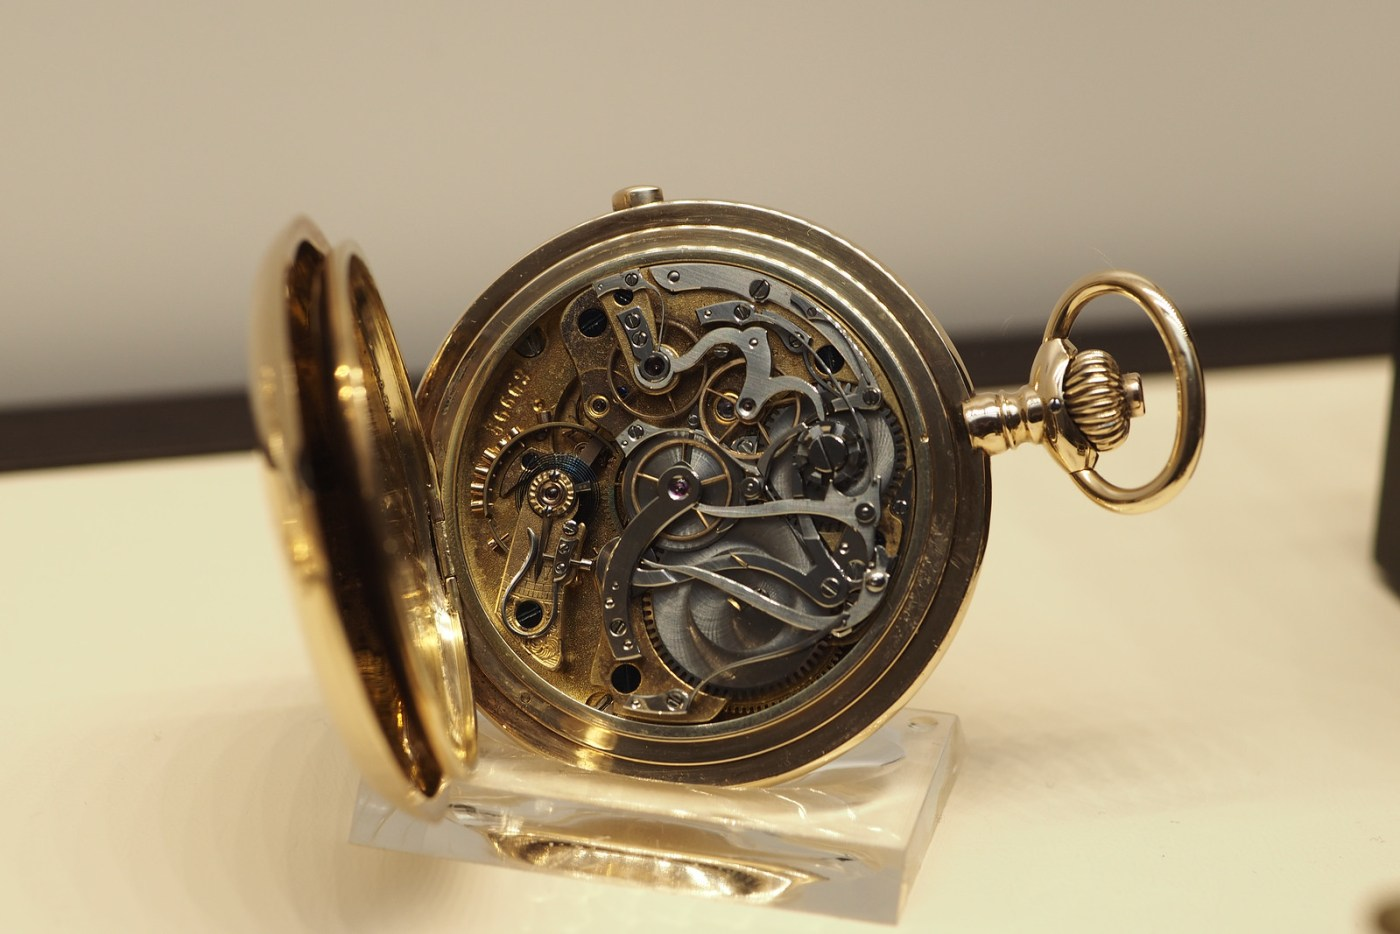 Glashutte Original vintage pocketwatch